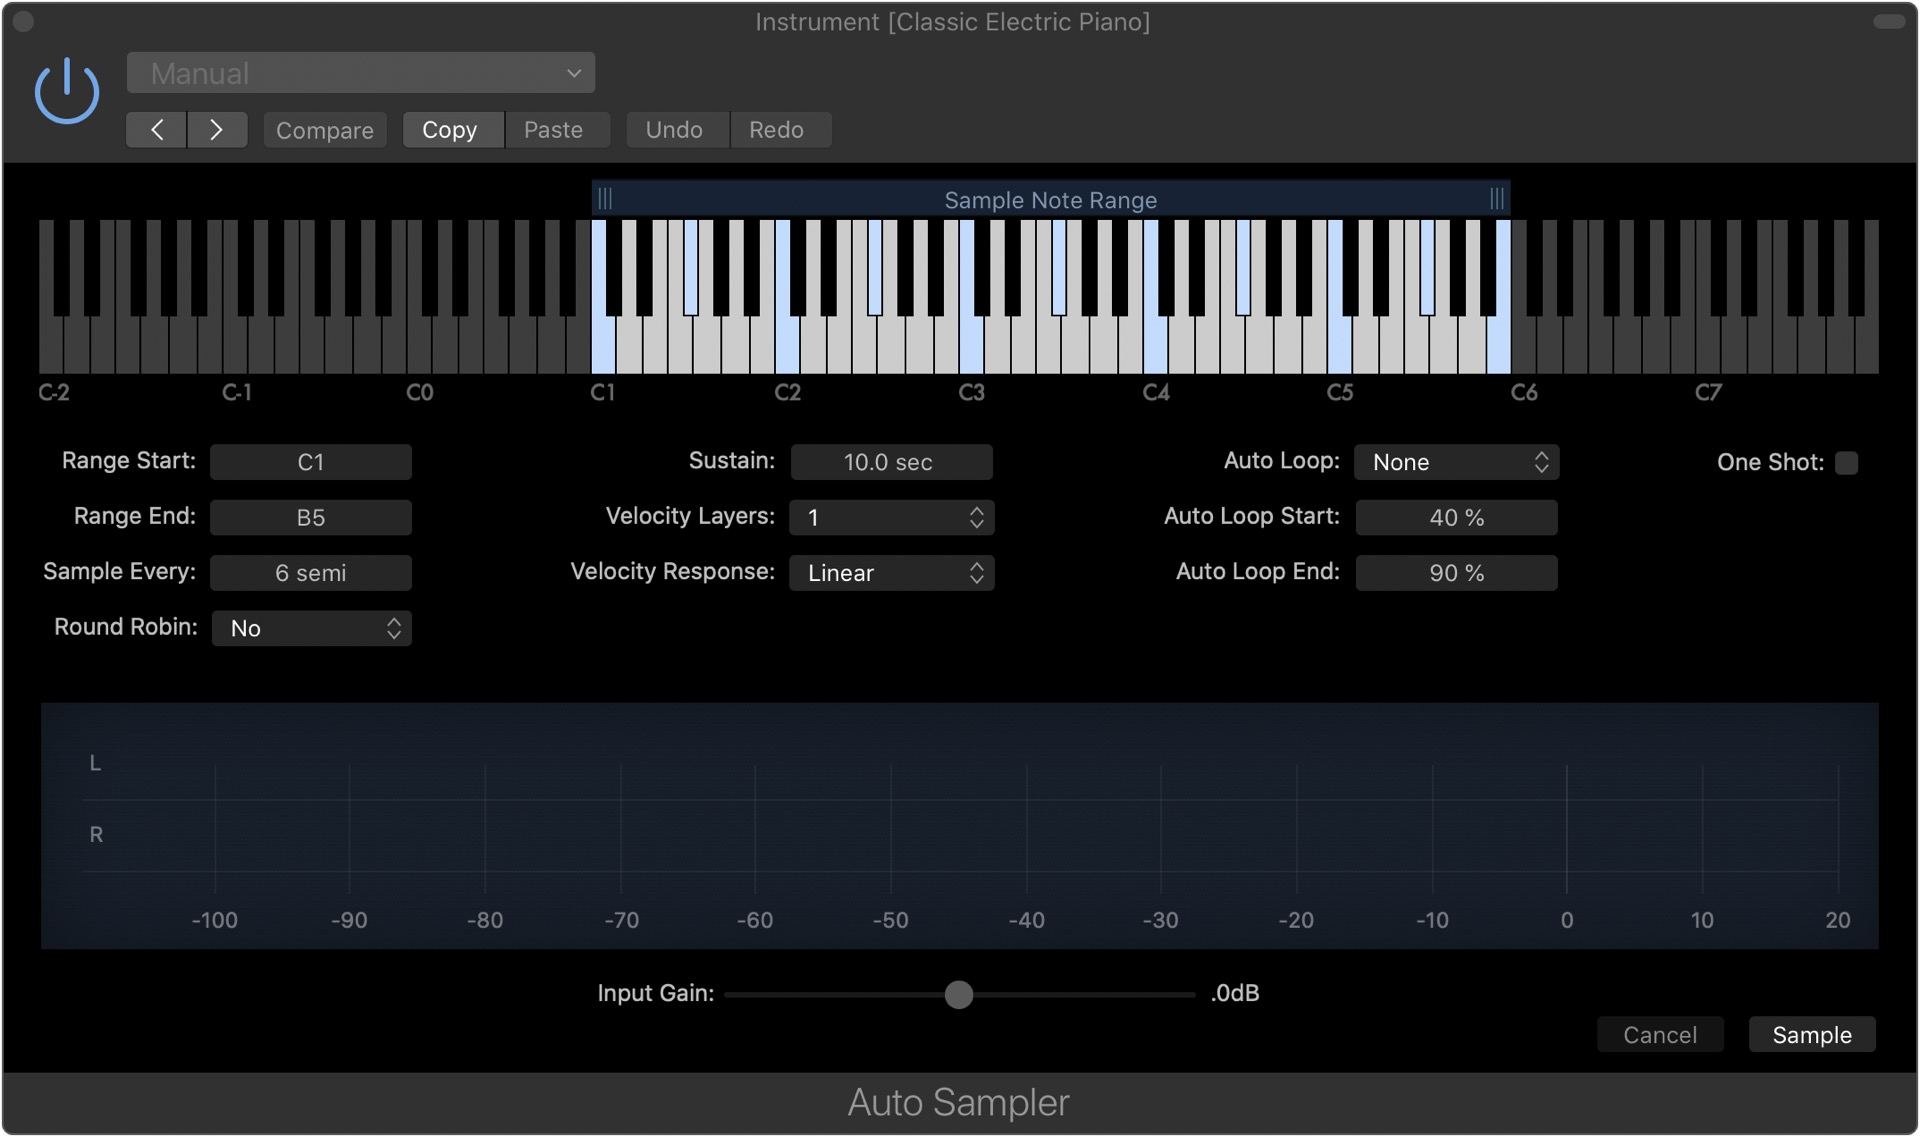 Learn how to configure Auto Sampler settings.